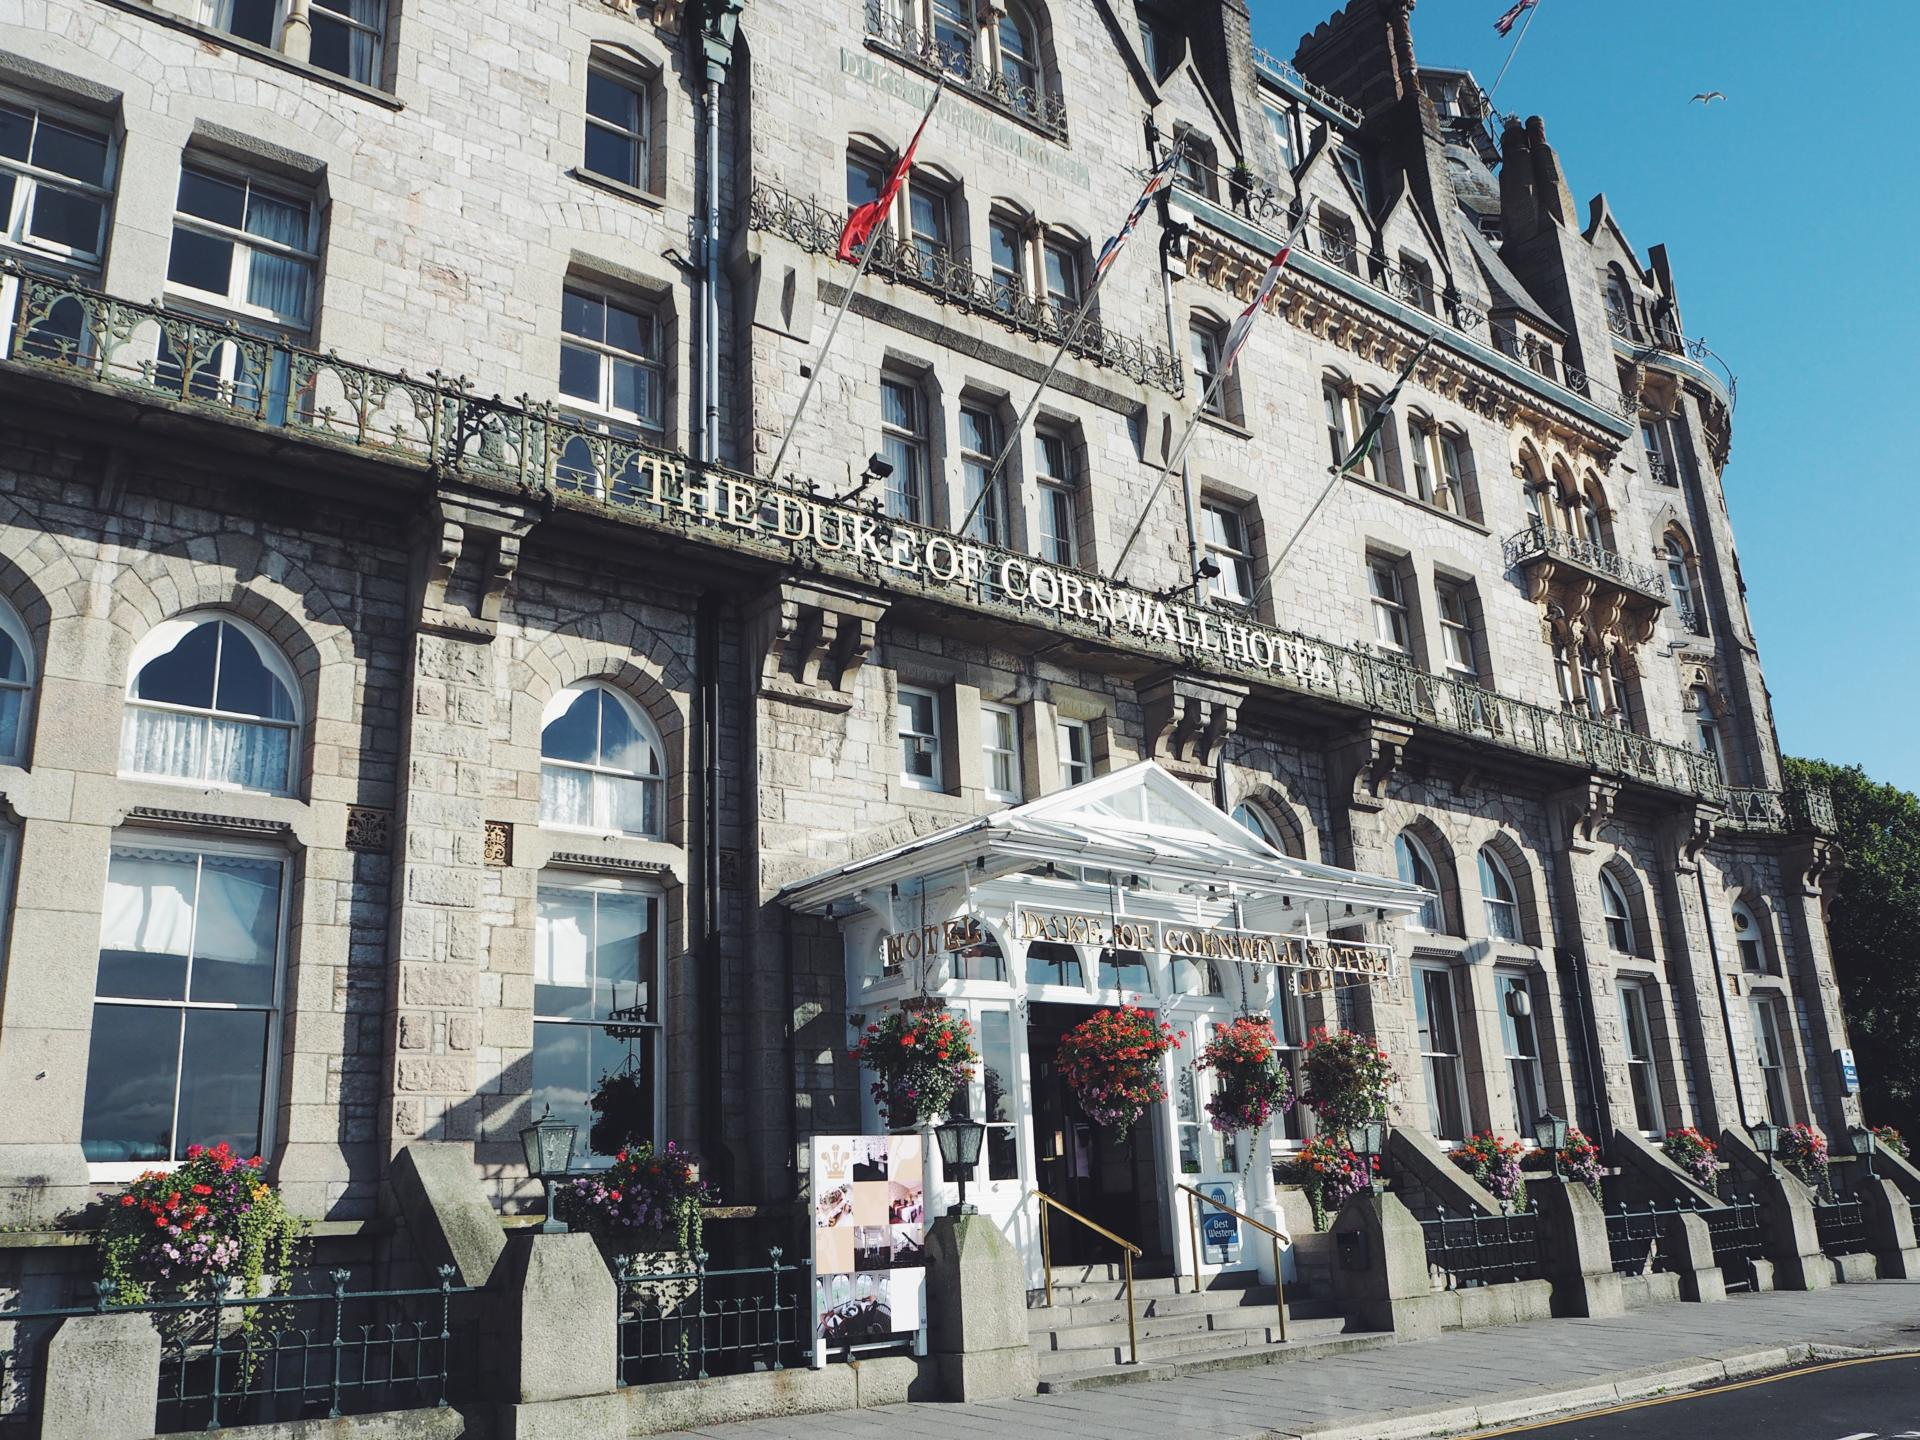 A stay with the Duke of Cornwall Hotel, Plymouth